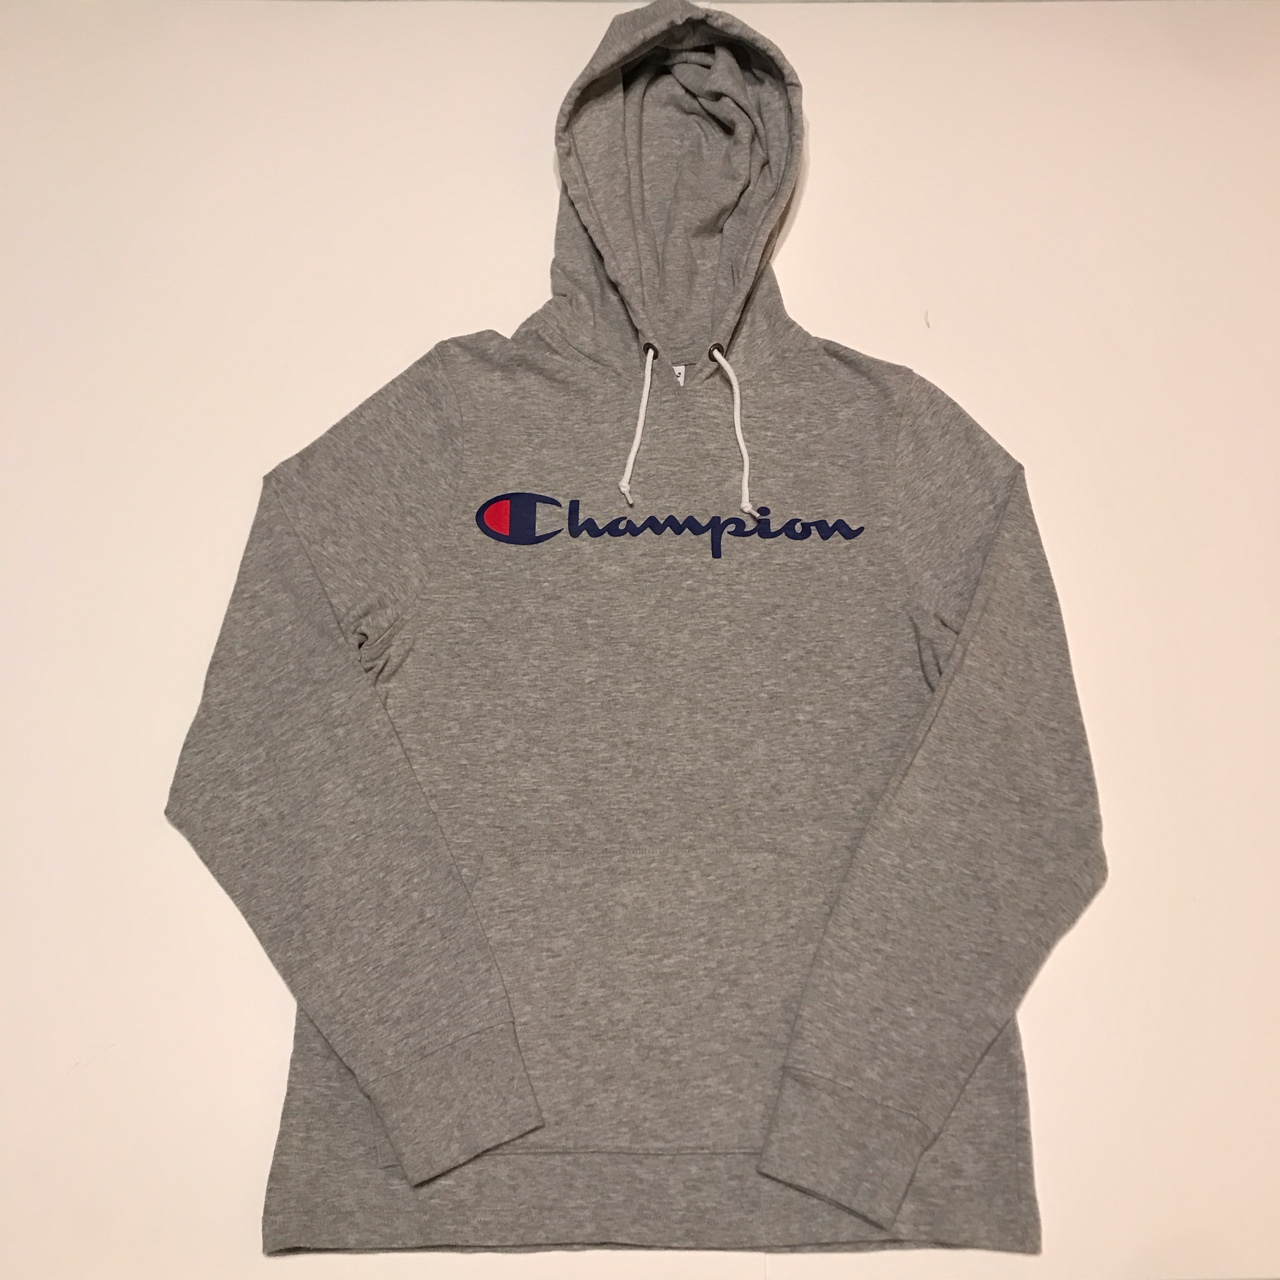 Product Image 1 - CLASSIC CHAMPION SPELLOUT PULLOVER HOODIE